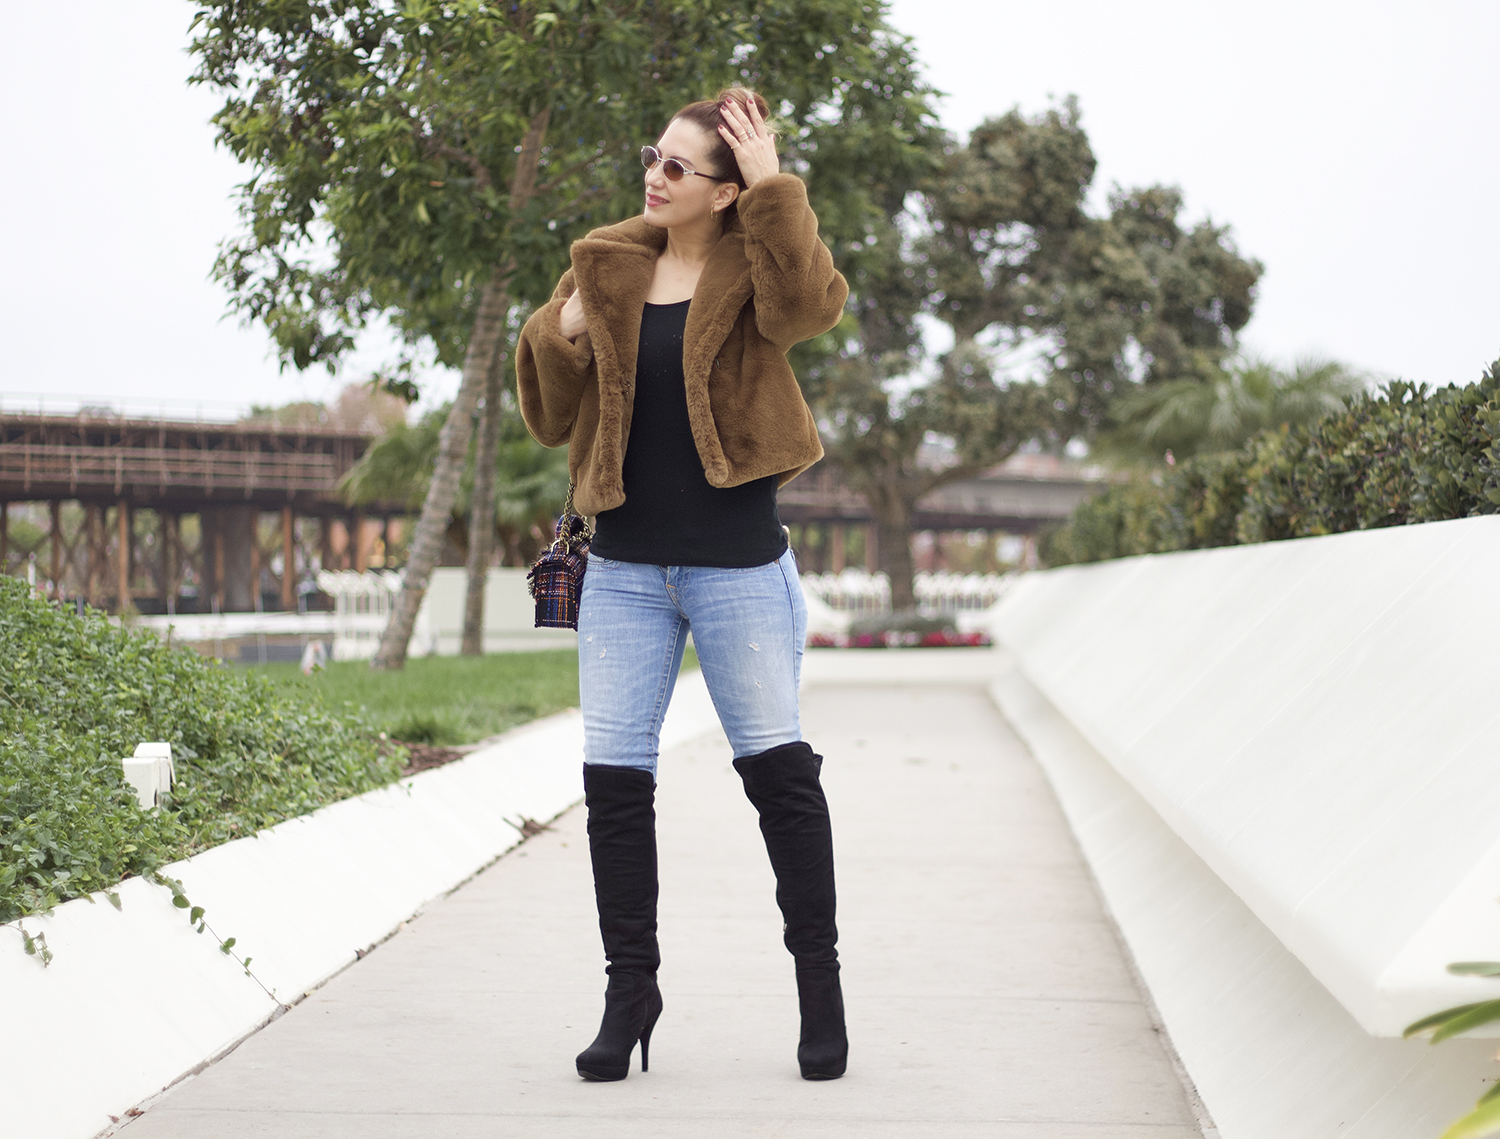 woman wearing a faux fur coat paired with jeans and over the knee boots. Her idea was to create cute winter outfits that look stylish.